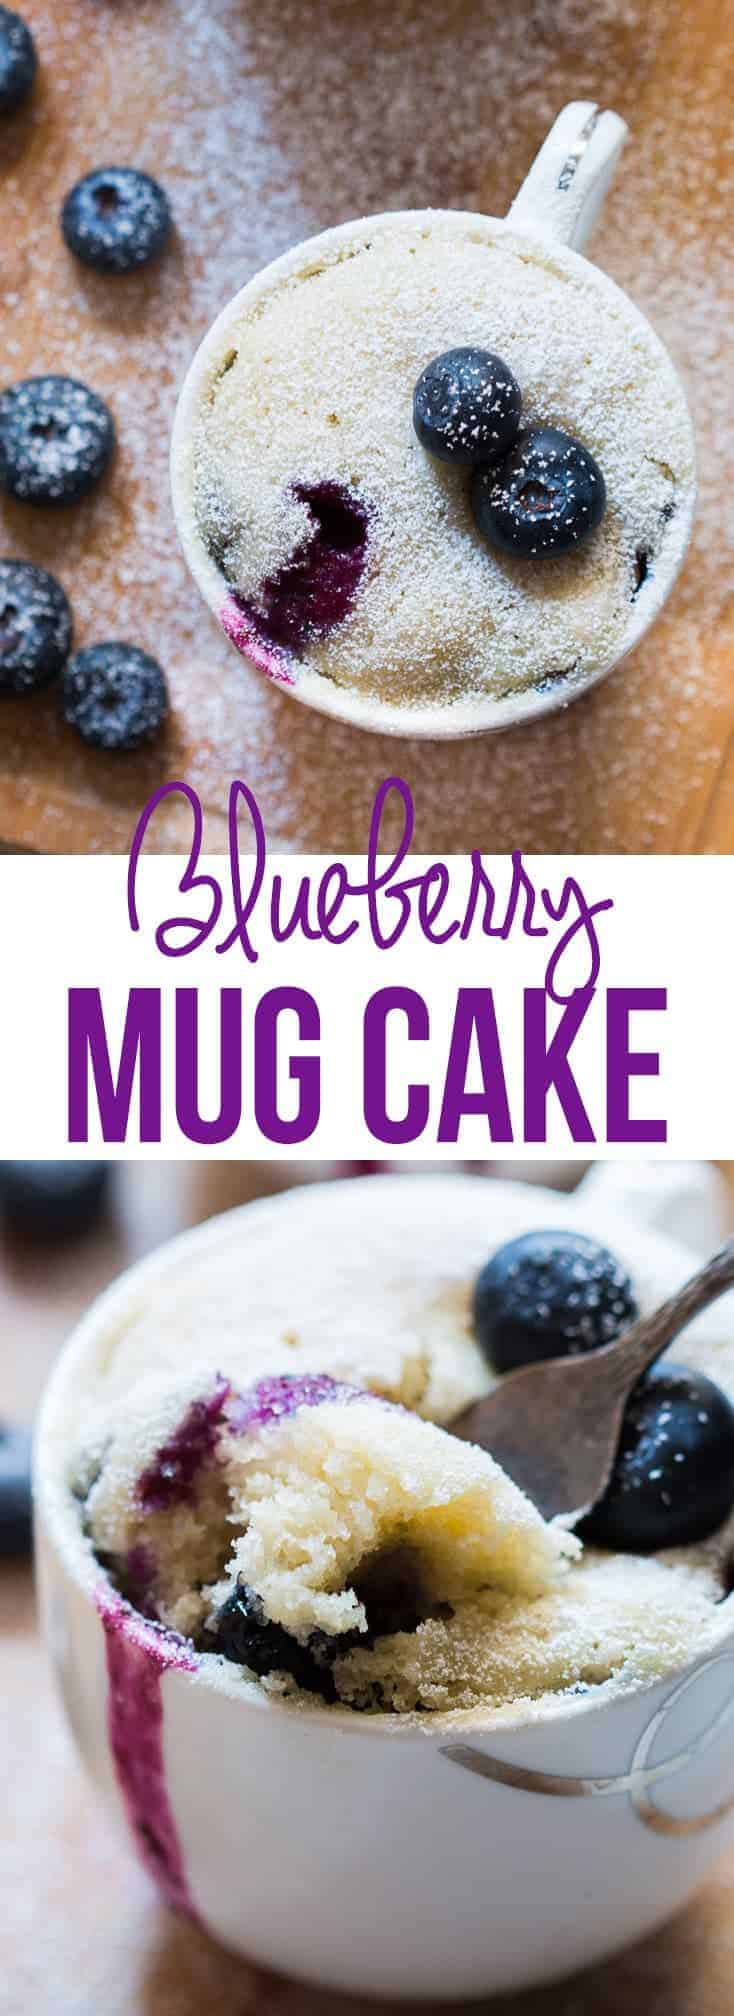 This Eggless Blueberry Microwave Mug Cake is ready under two minutes and doesn\'t require a baking pan or oven! It has a really soft and fluffy texture and the juice from the blueberries oozes out when you dig in to take a bite. You can swap ingredients to make different flavors every time. Fill the mug only halfway because the cake rises! #myfoodstory #recipe #cake #microwave #blueberries #eggless